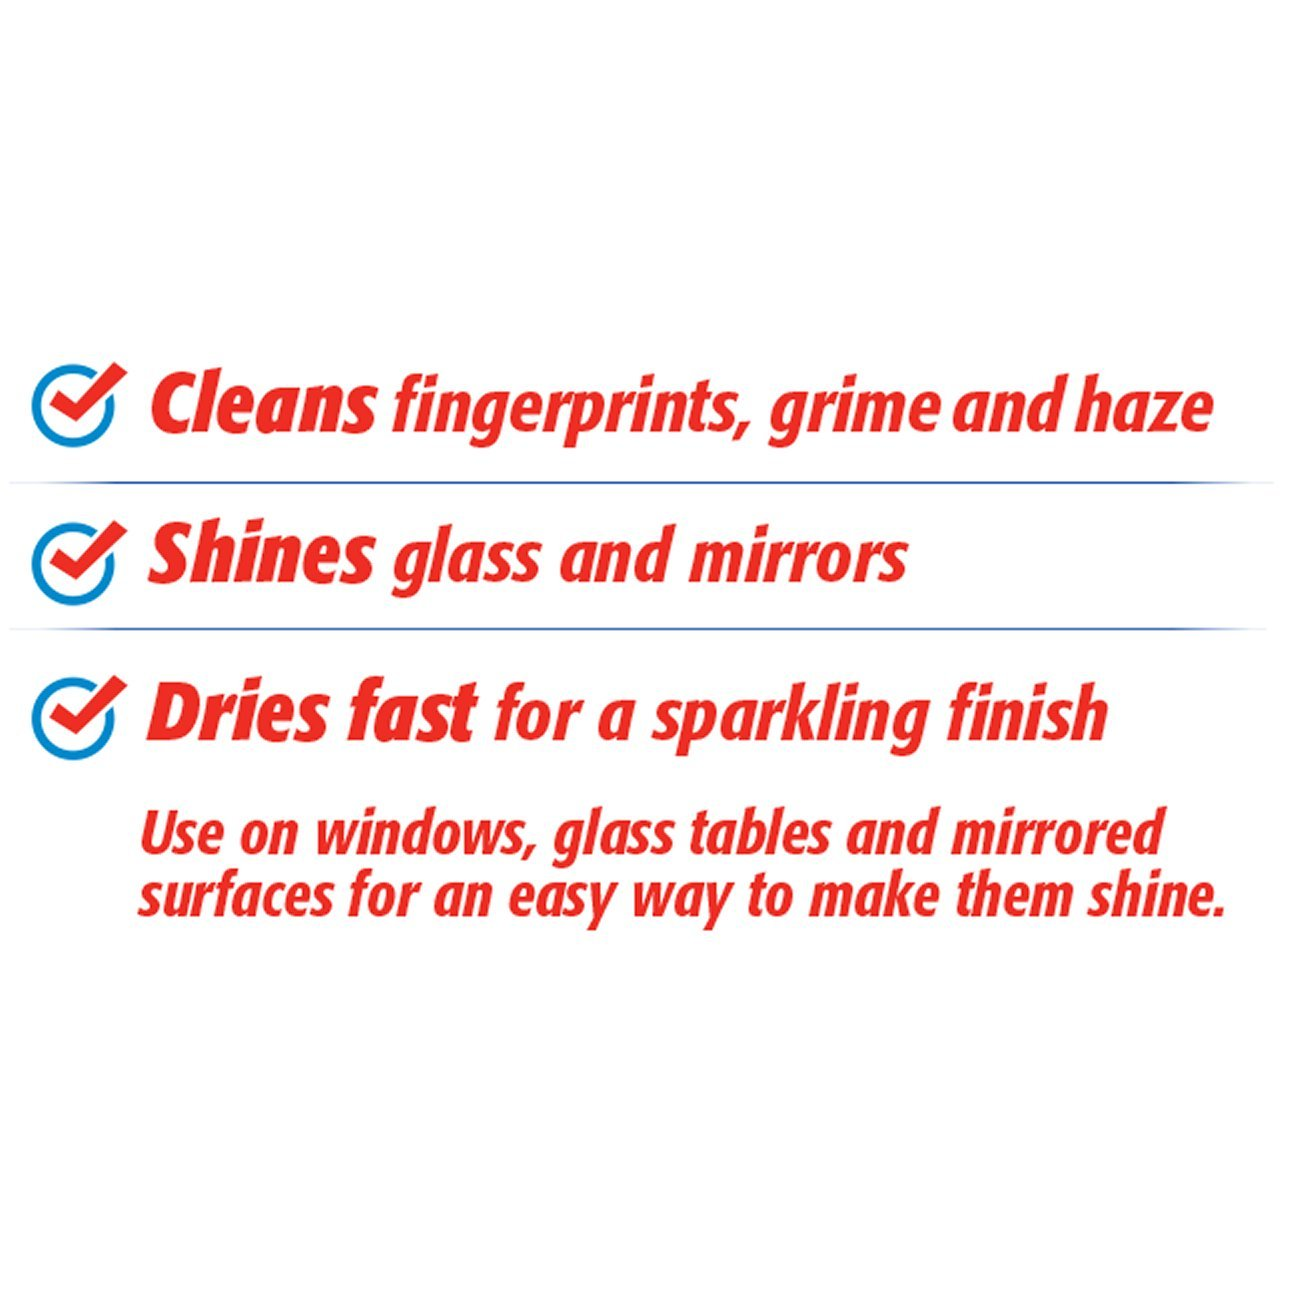 Amazon.com: Clorox Glass Wipes, Streak Free Cleaning Wipes - Radiant Clean, 32 Count: Prime Pantry